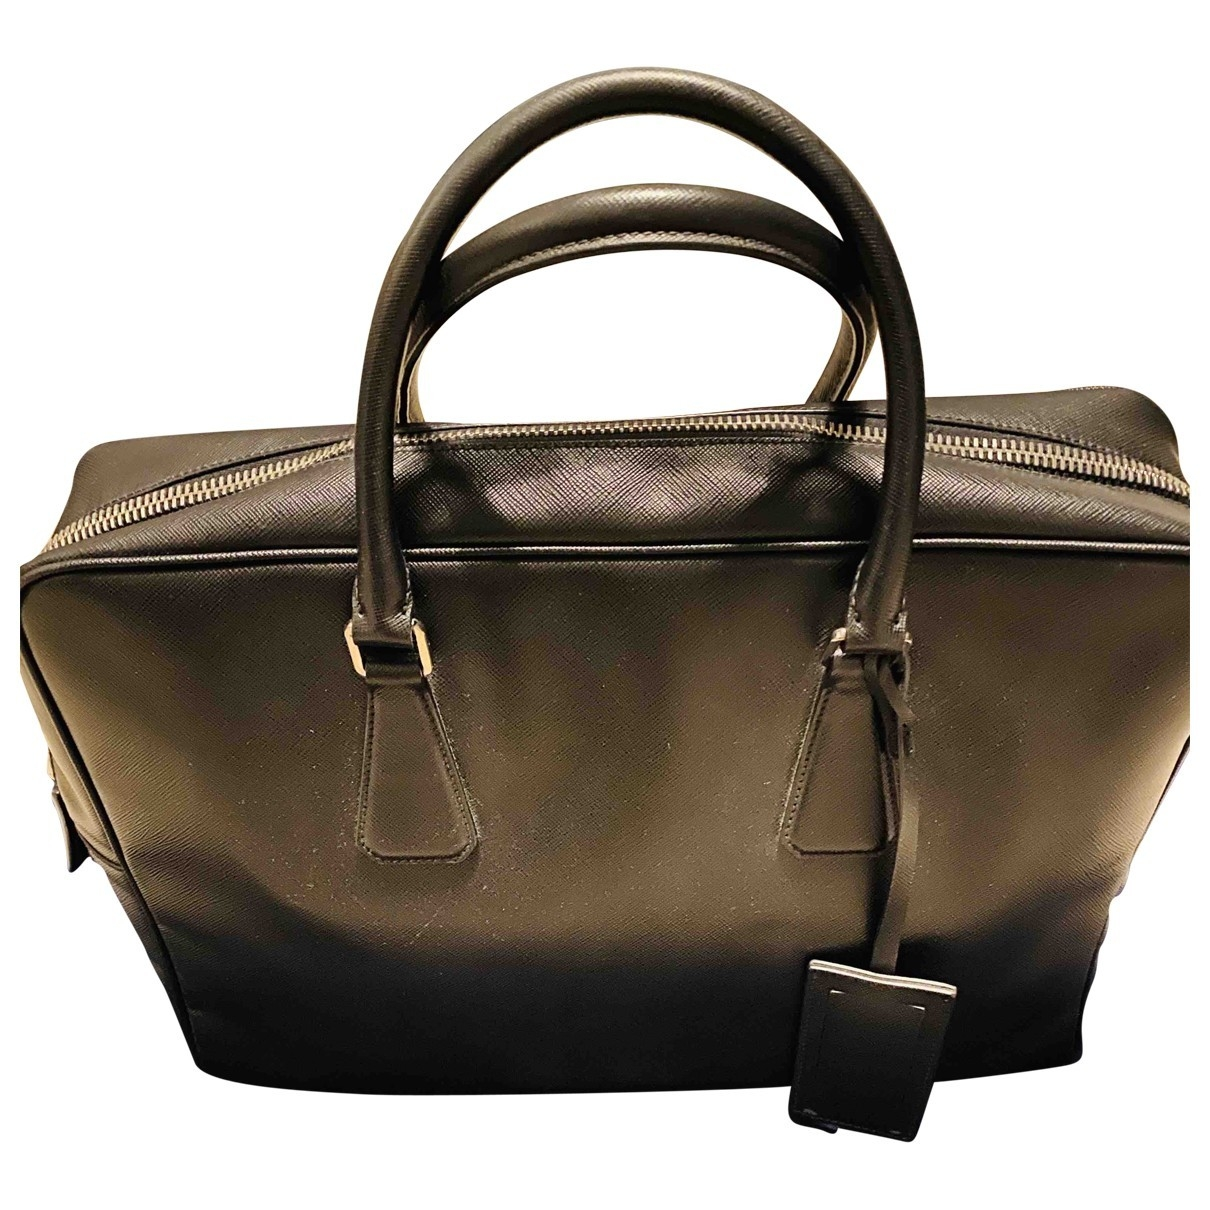 Prada \N Black Leather Travel bag for Women \N